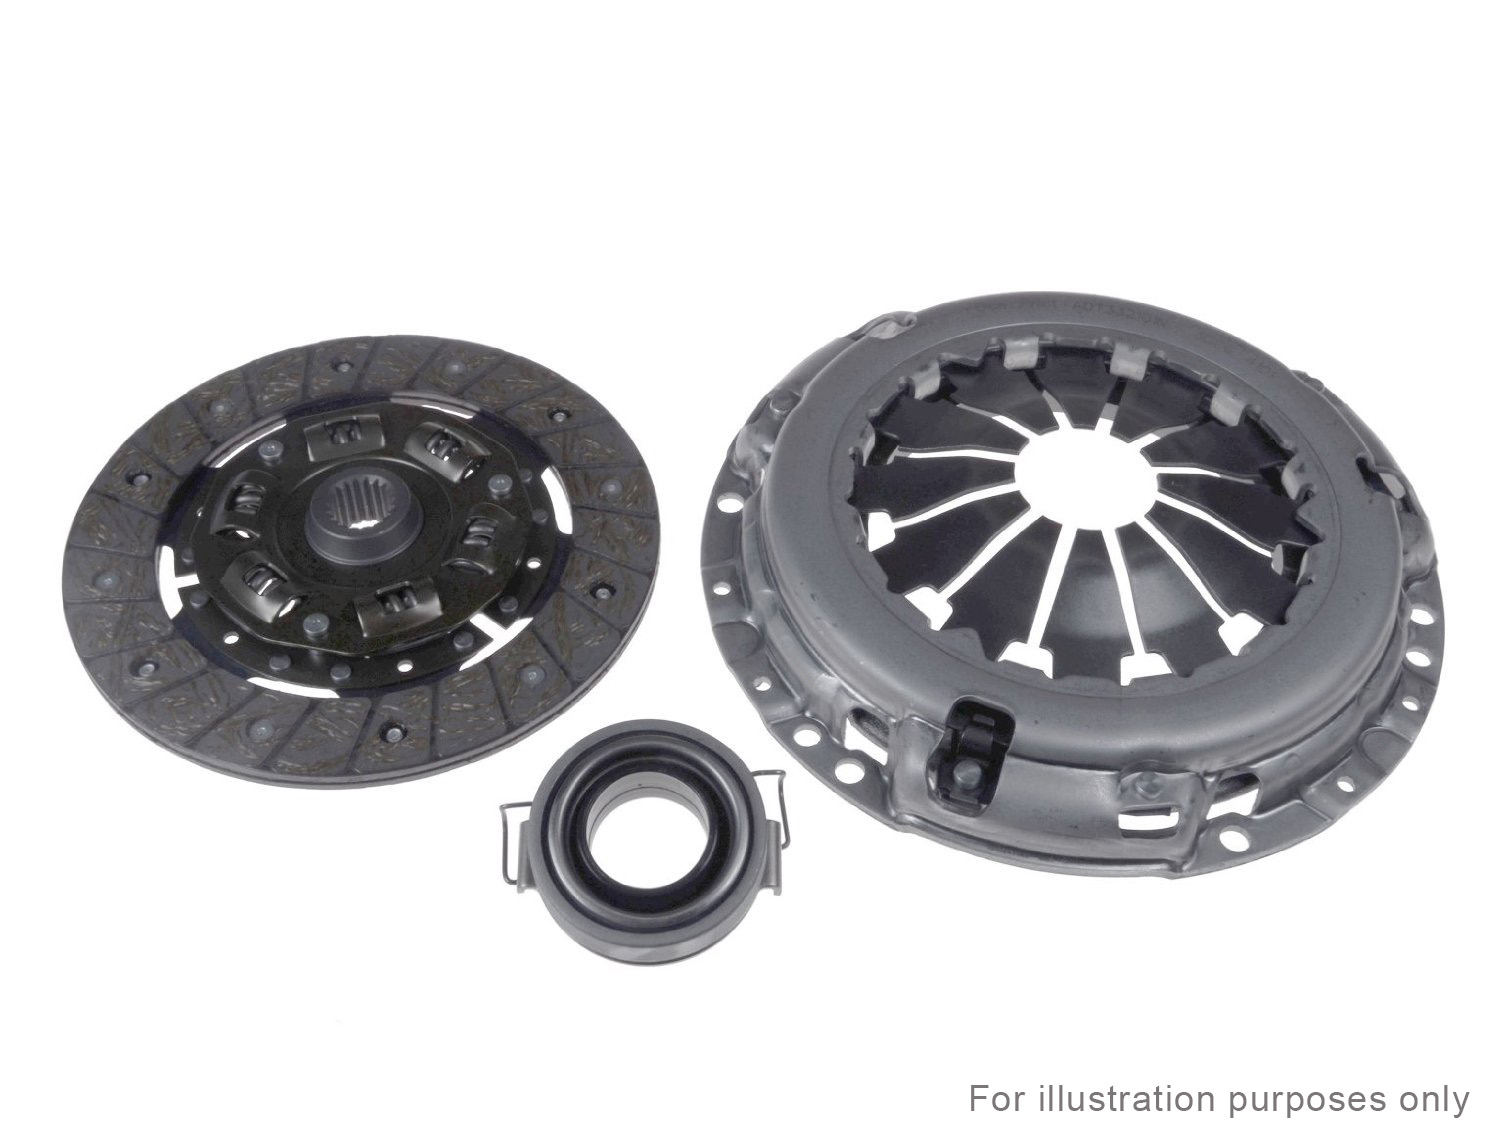 RENAULT 18 20 Fuego 1978-1986 3pc CLUTCH KIT QKT244AF Check Compatibility